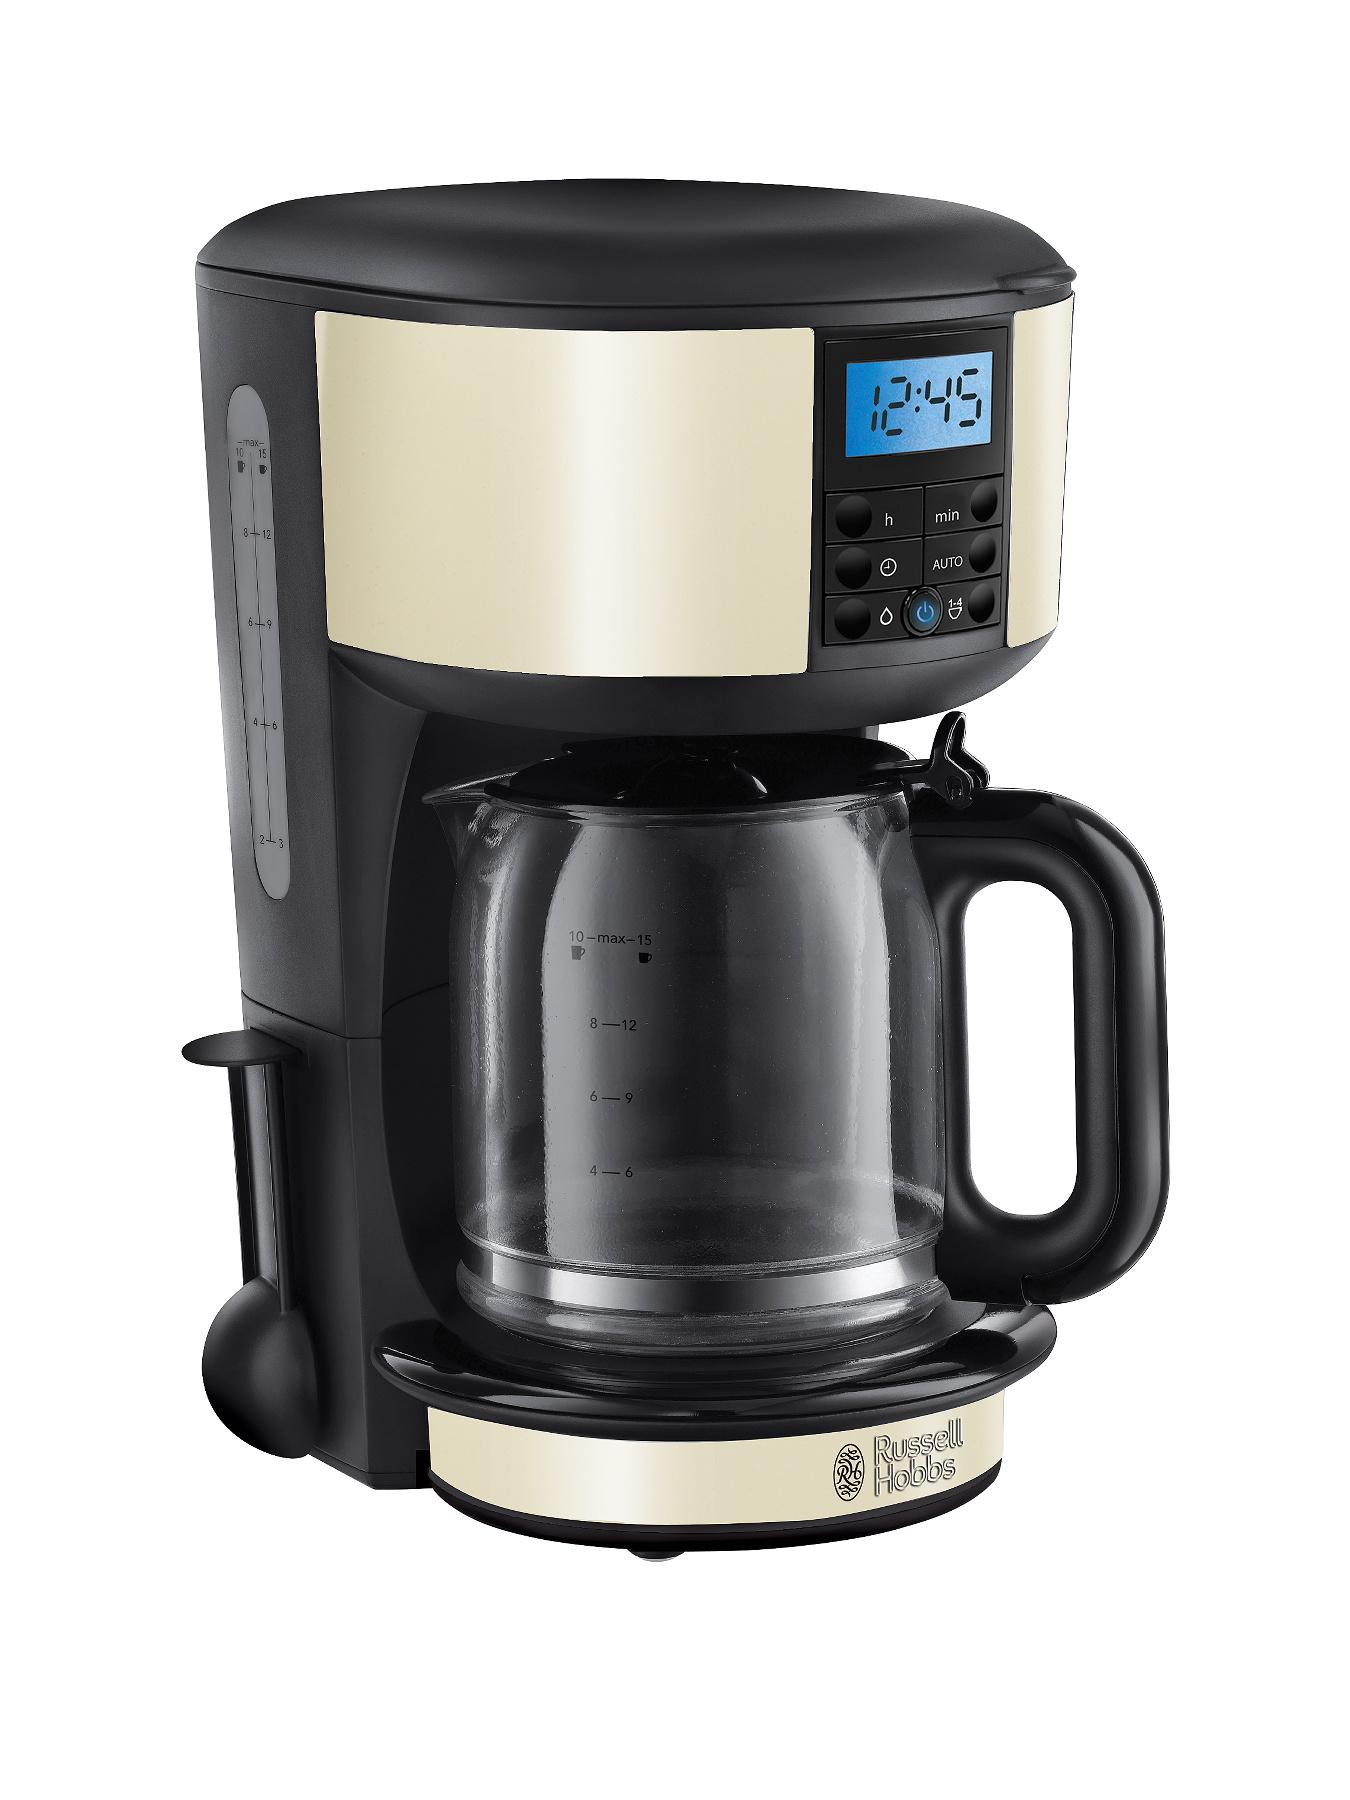 Buy Cheap Coffee Maker 4 Cup Compare Coffee Makers